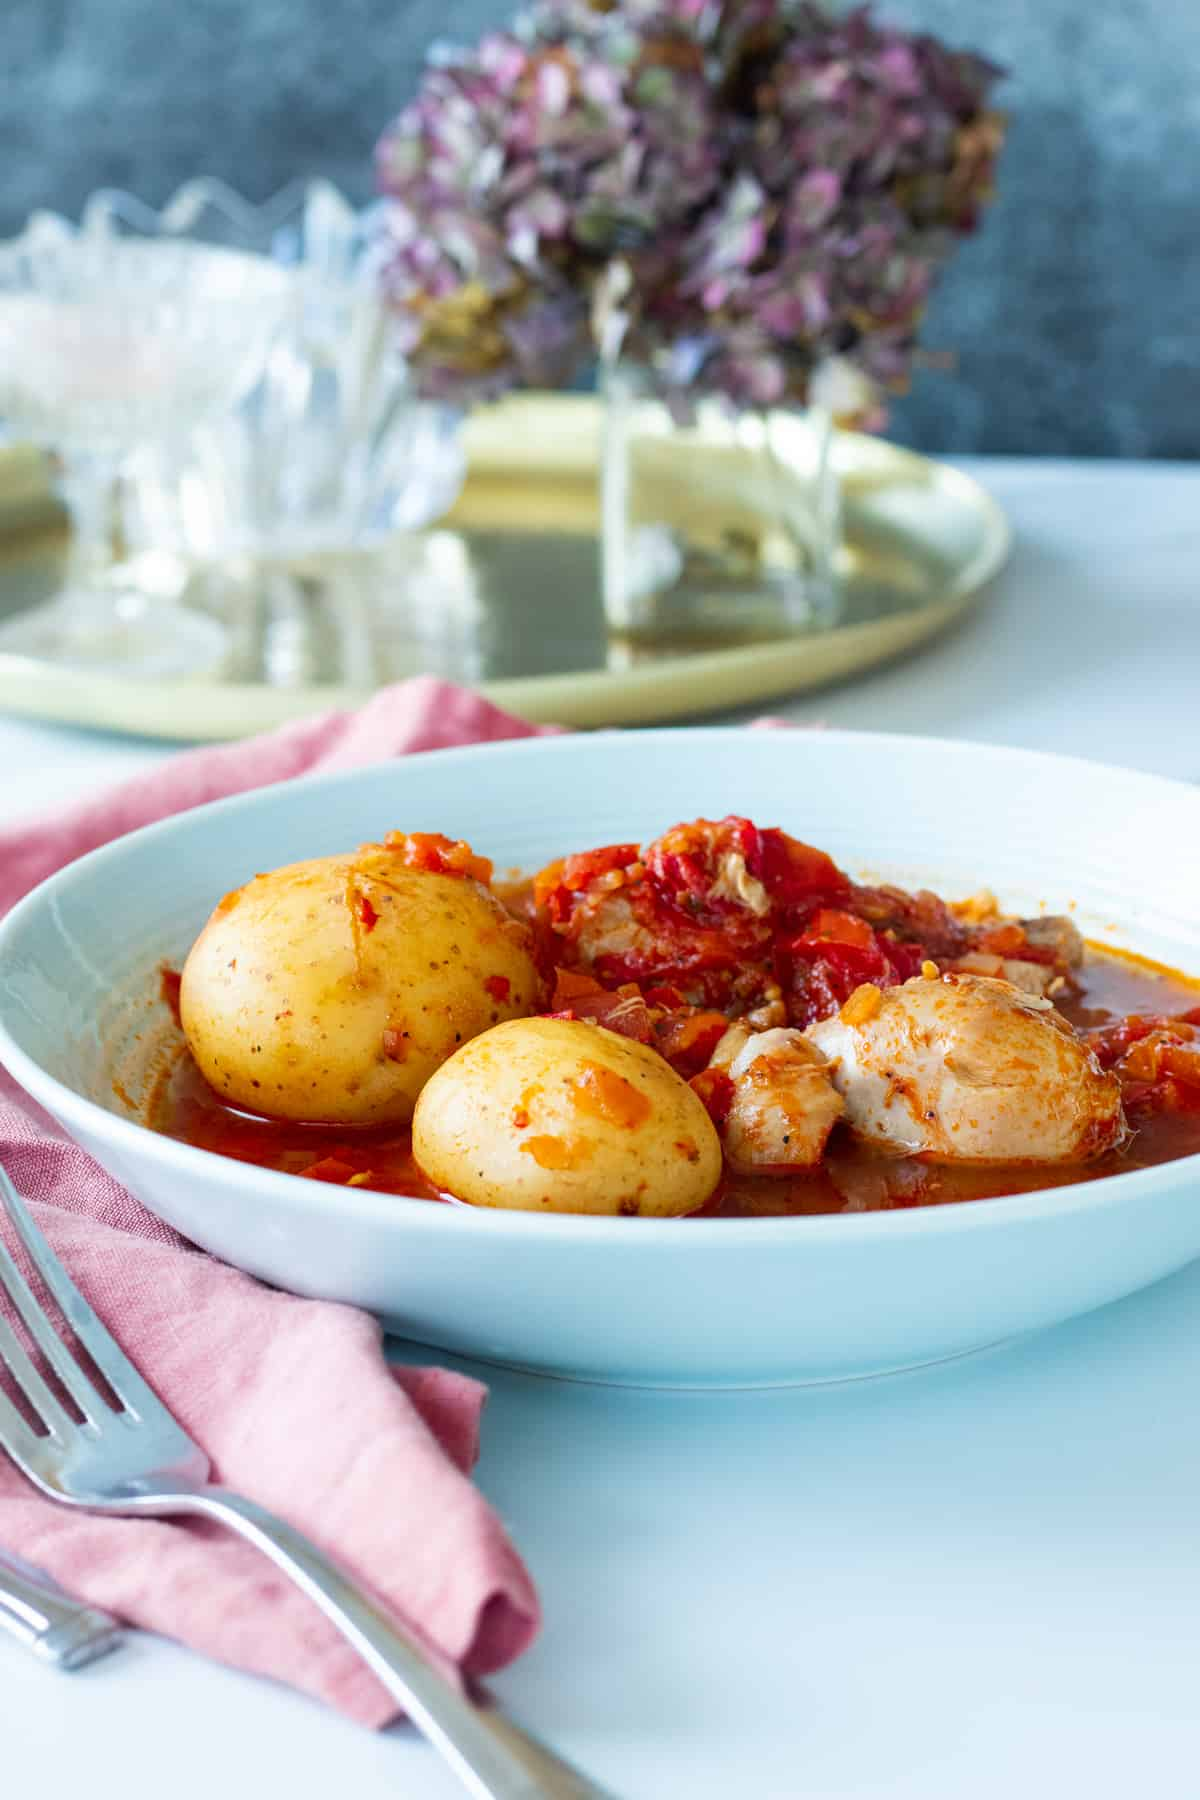 chicken and potatoes with tomato sauce in a blue bowl